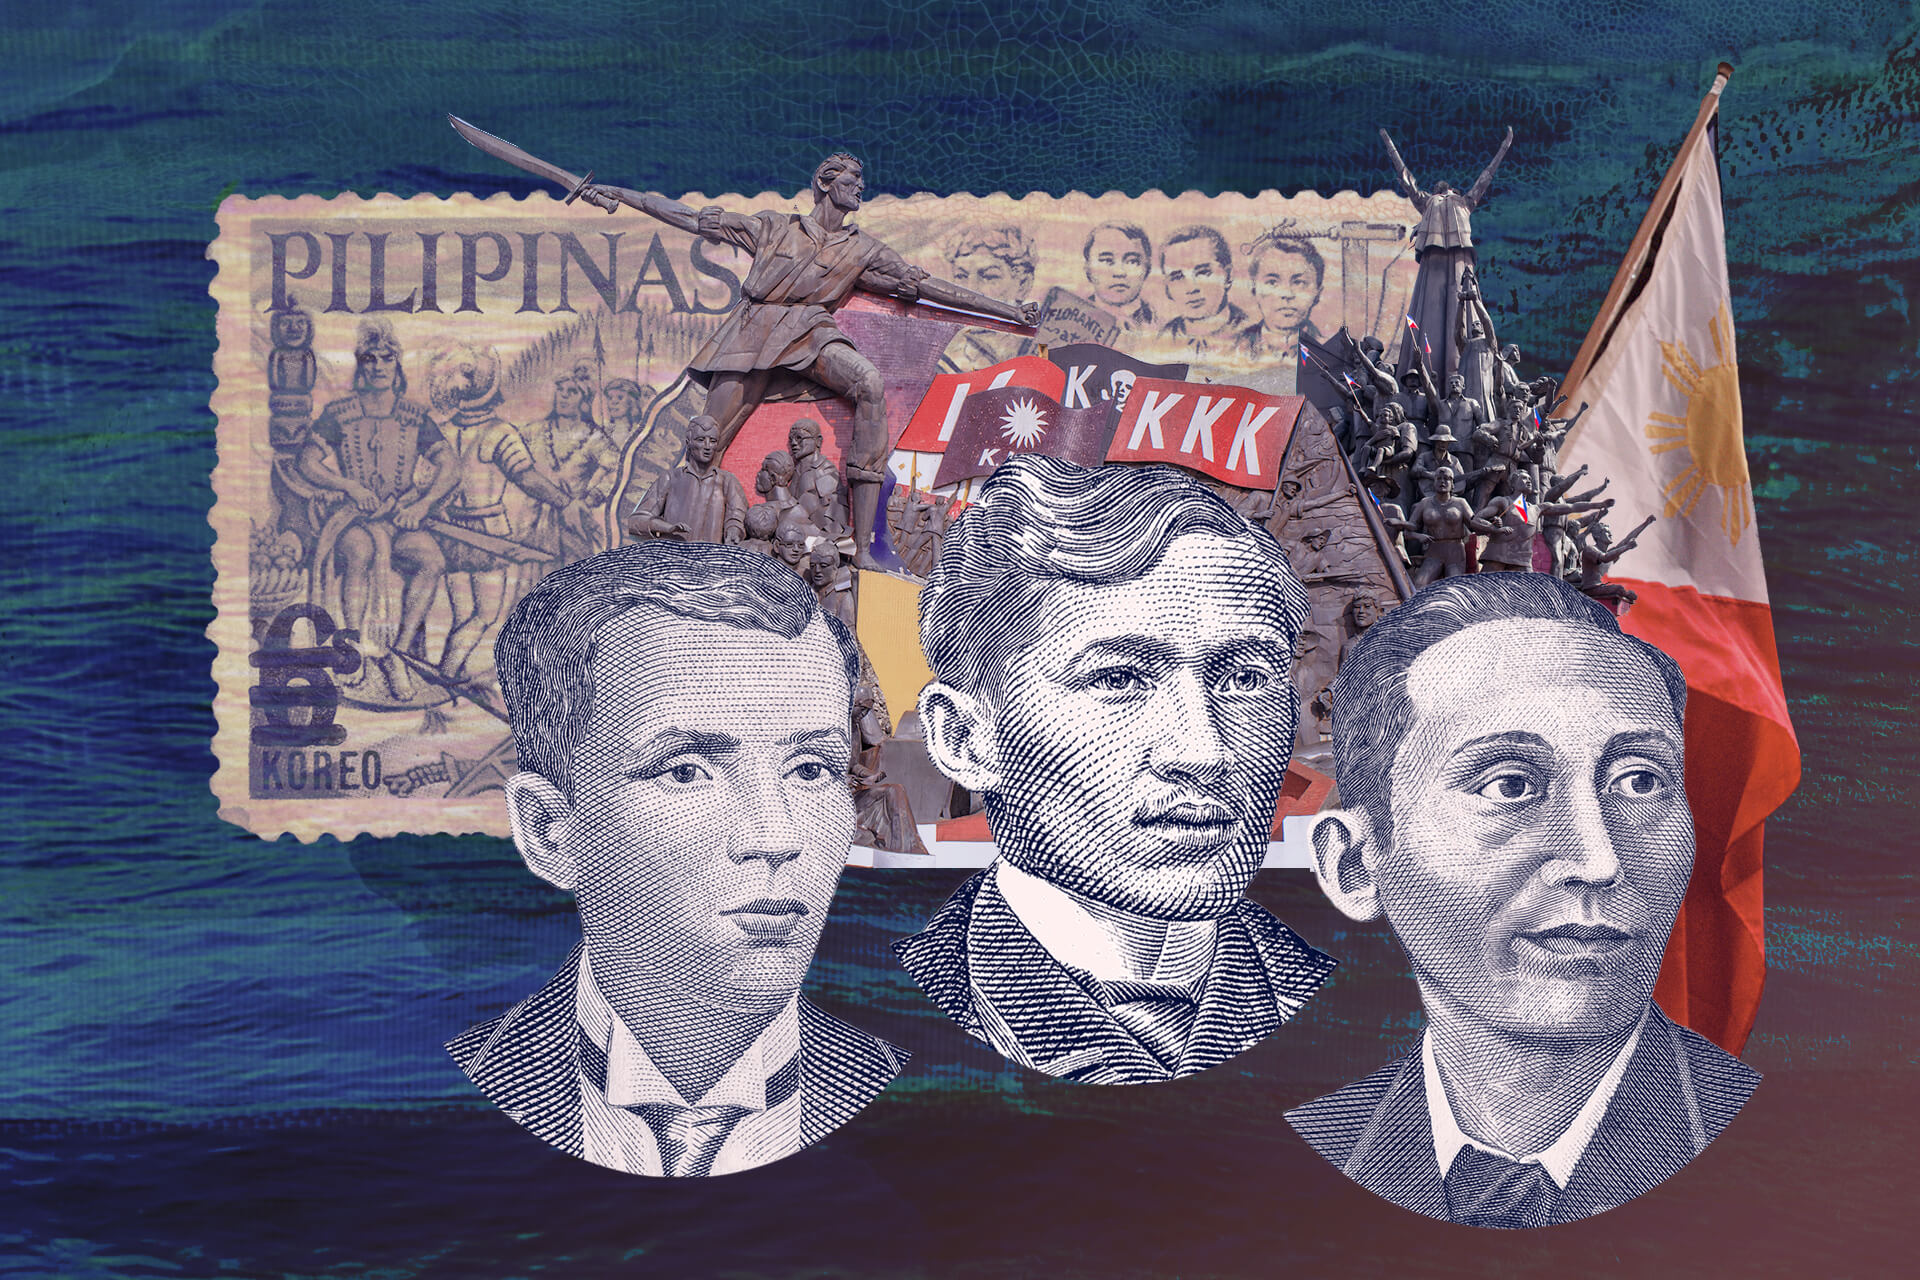 On National Heroes Day, we take a closer look at those we call heroes and why, with the help of Filipino historians.